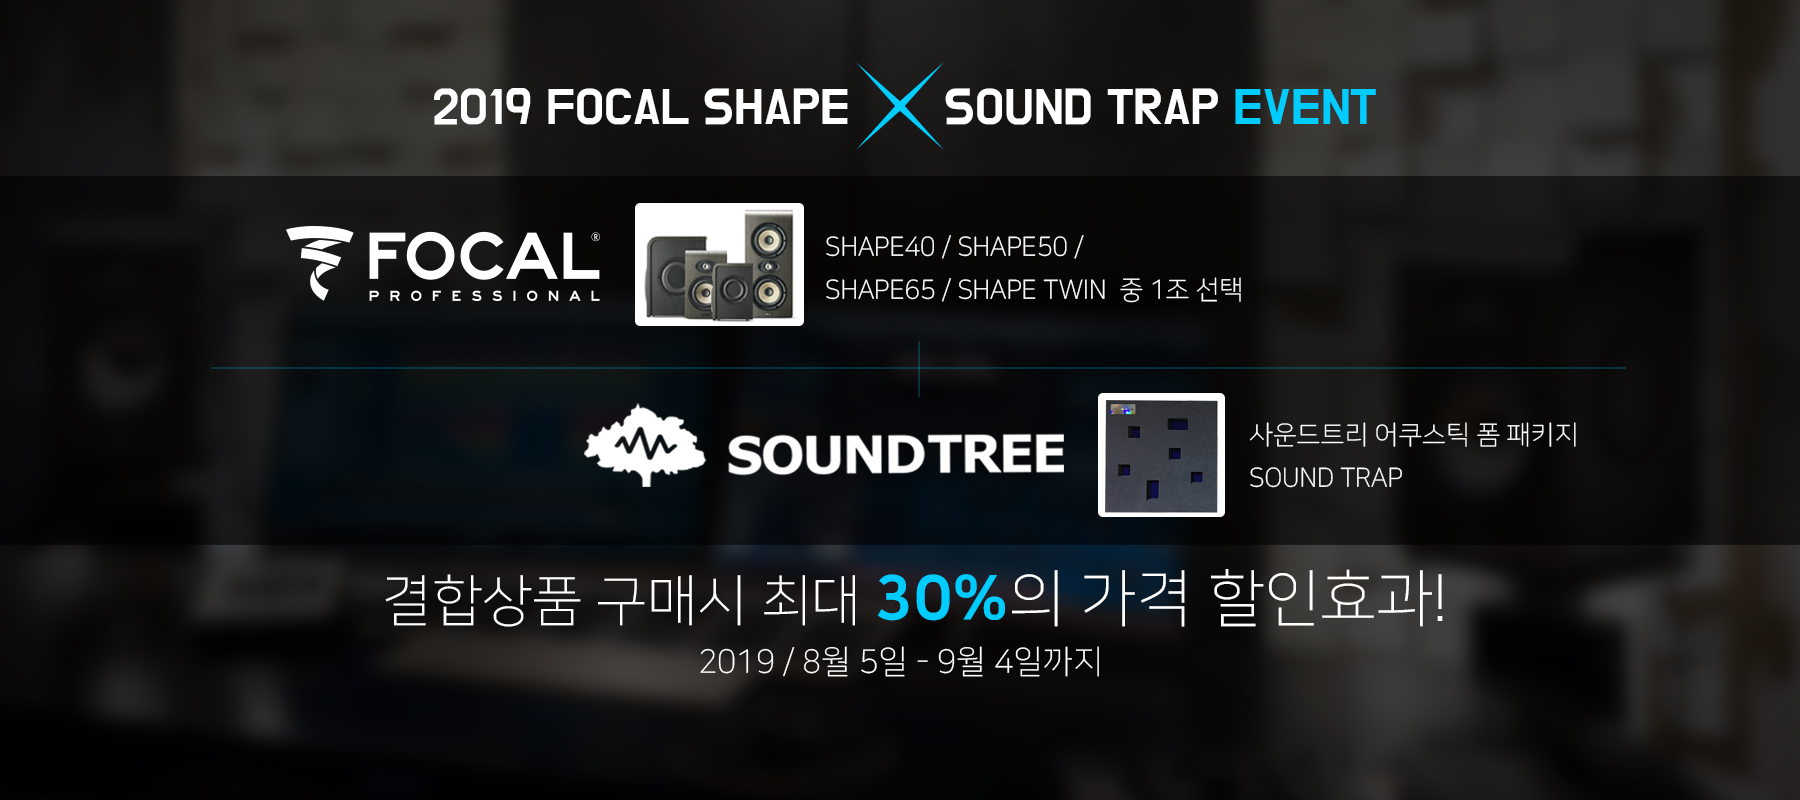 2019 Focal Shape X Sound Trap Event